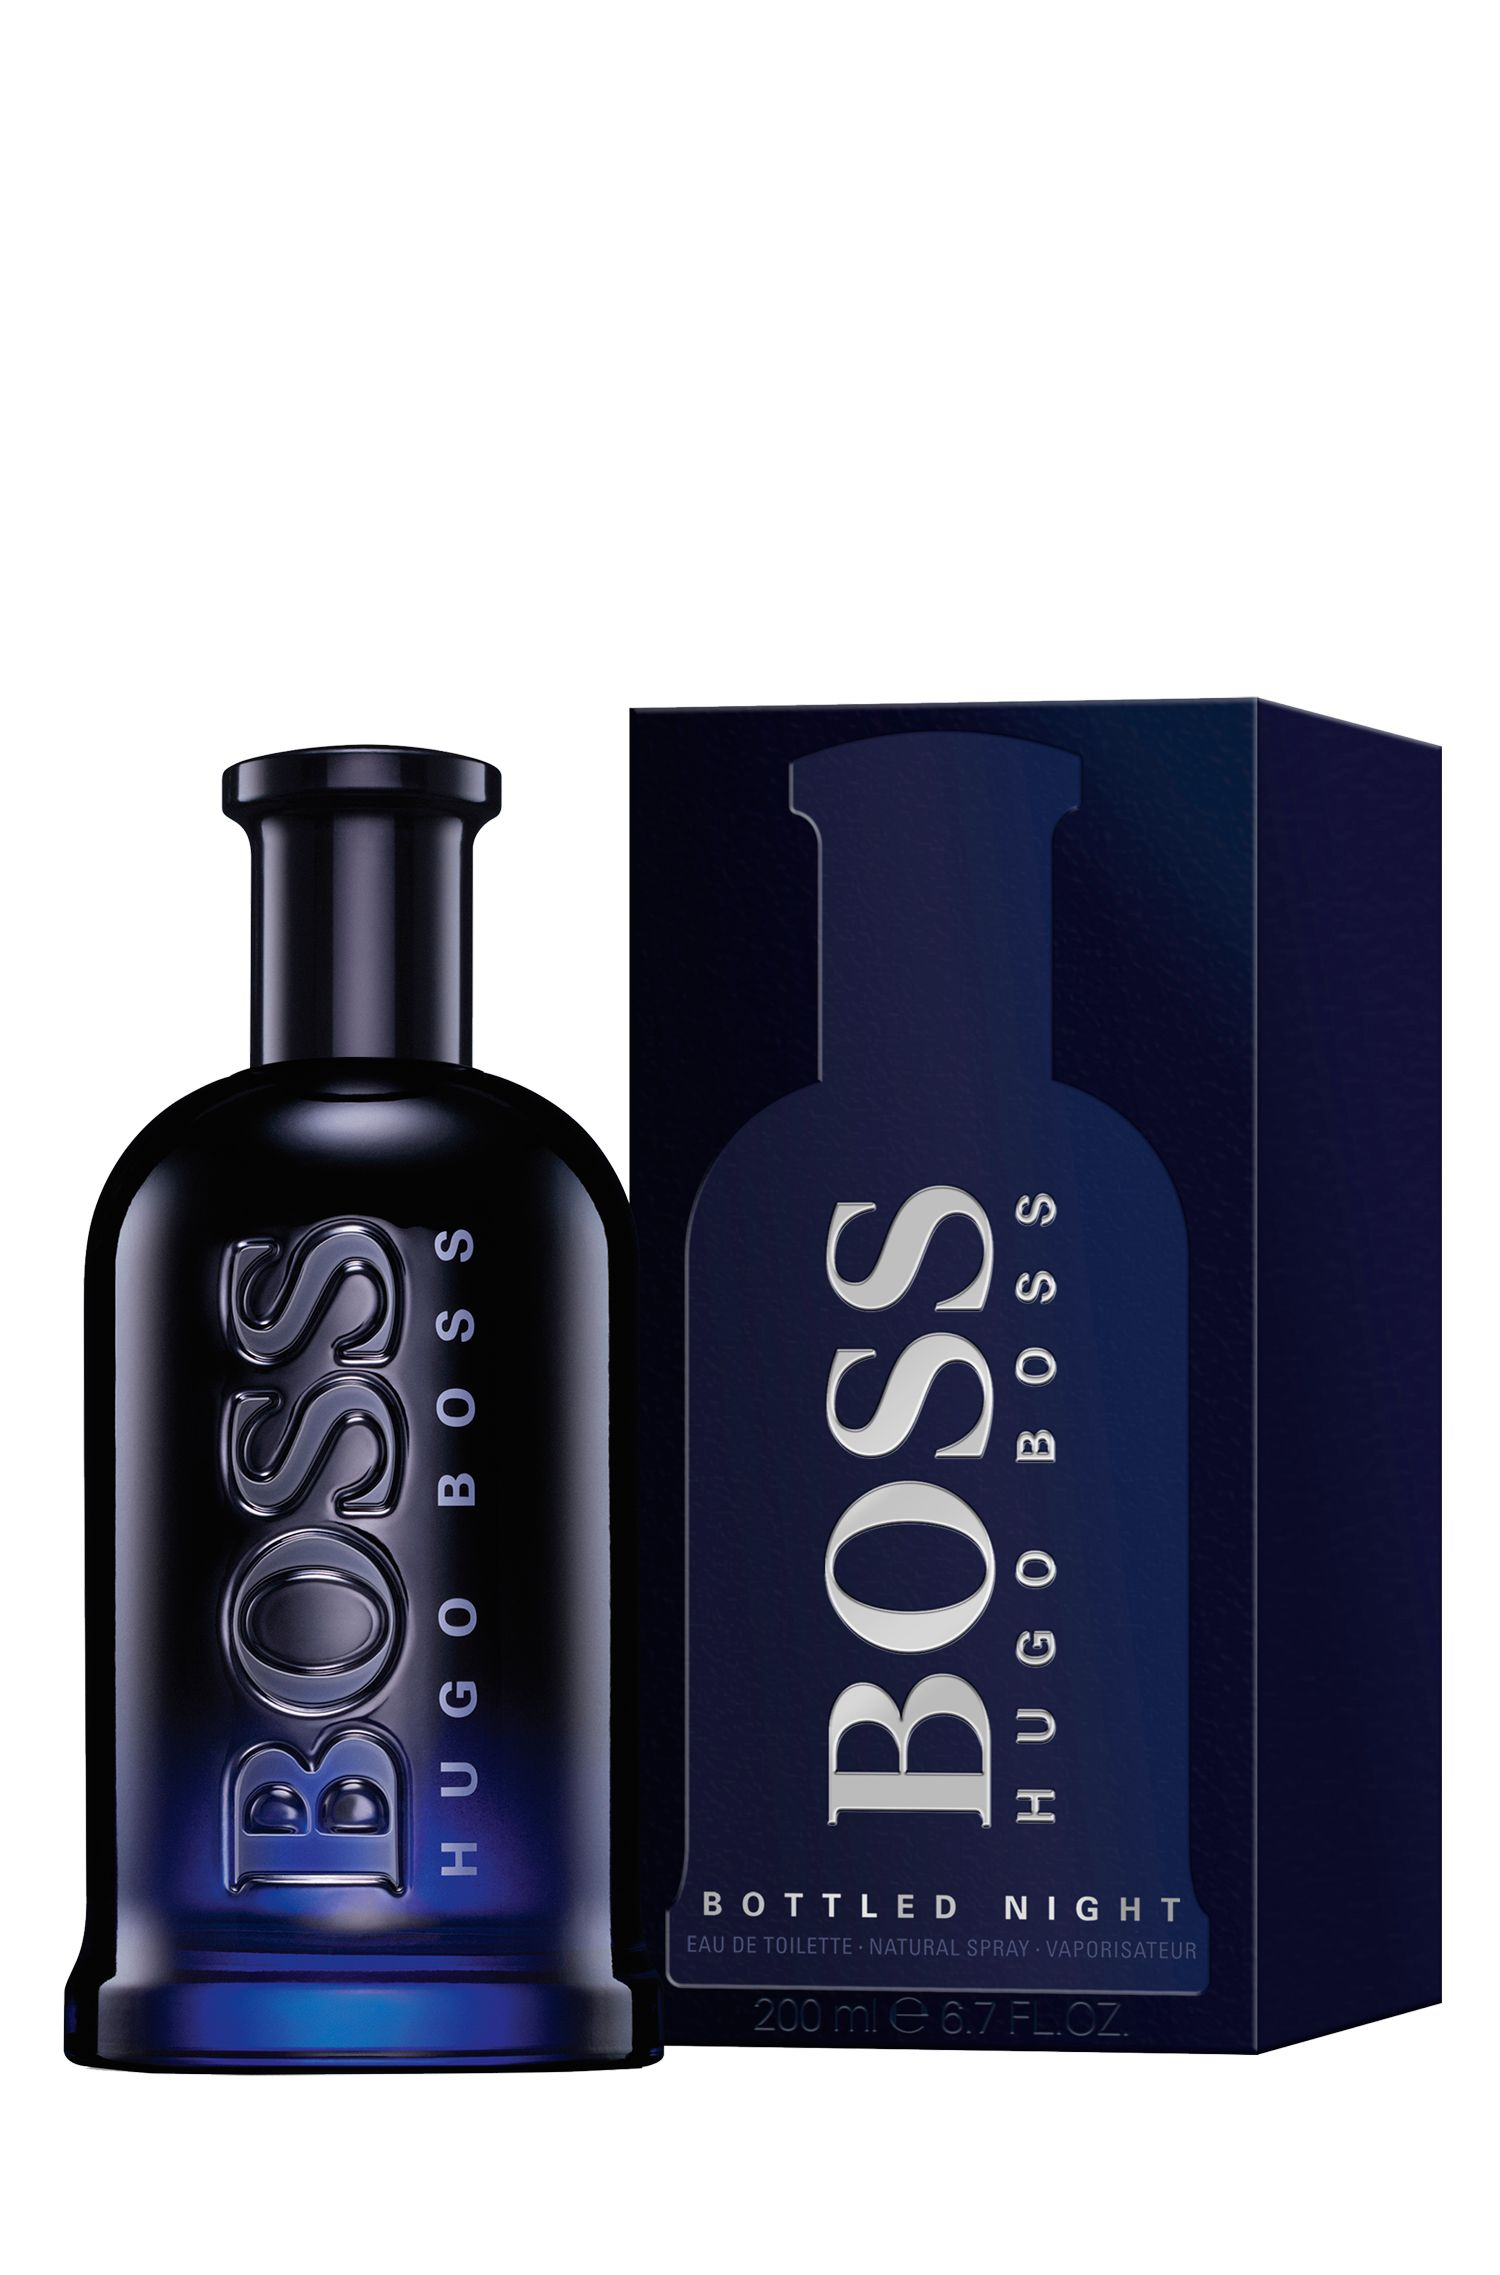 Eau de Toilette BOSS Bottled Night, 200 ml